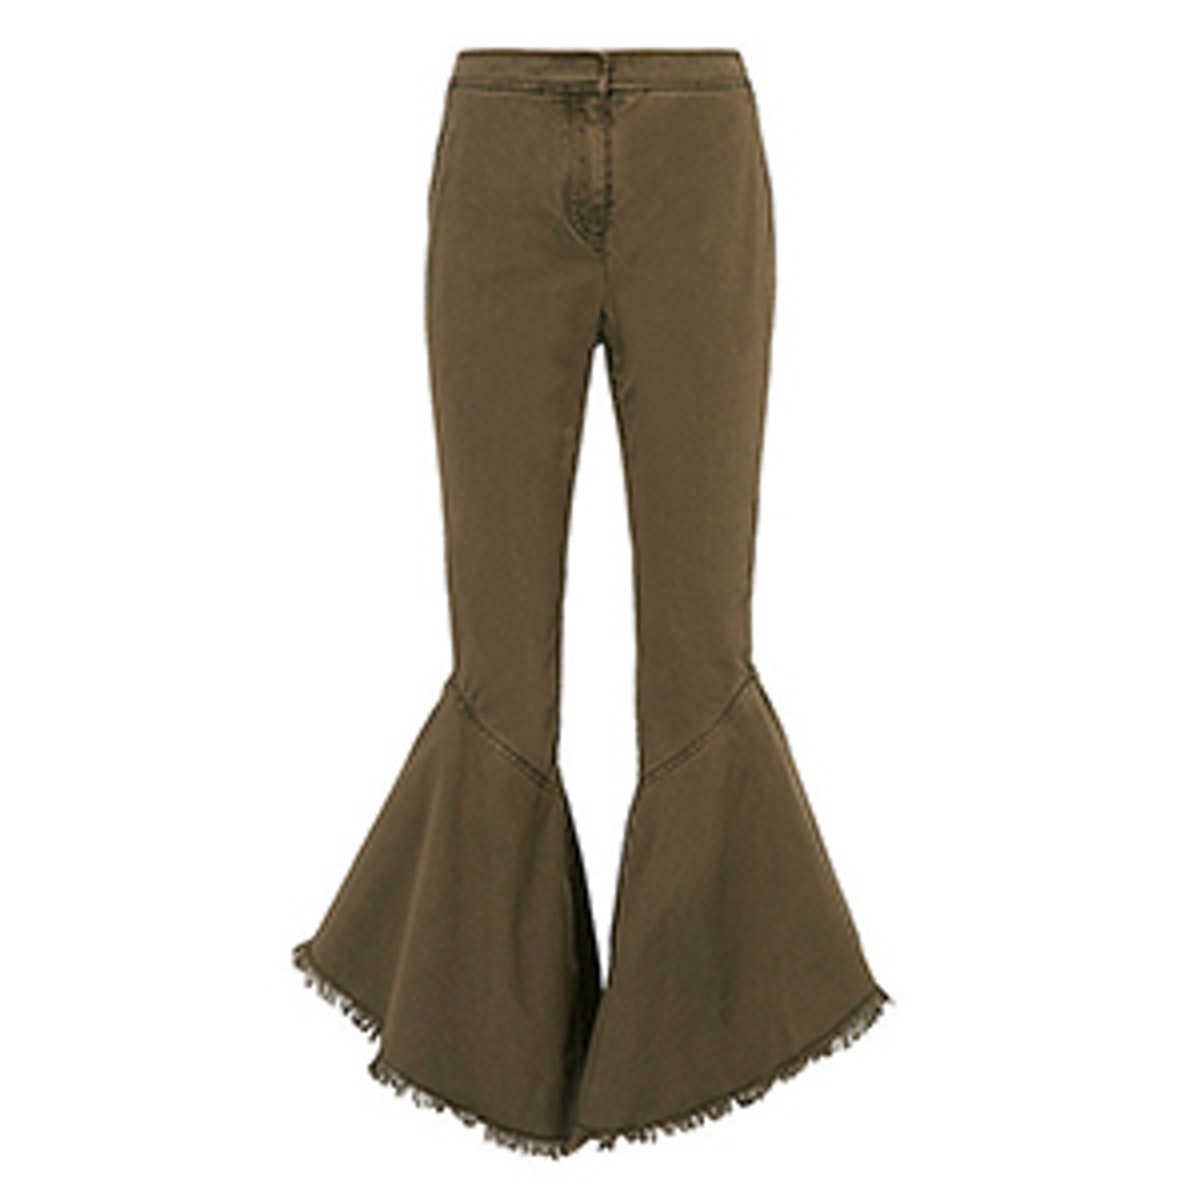 Wysteria Cropped Frill Pants